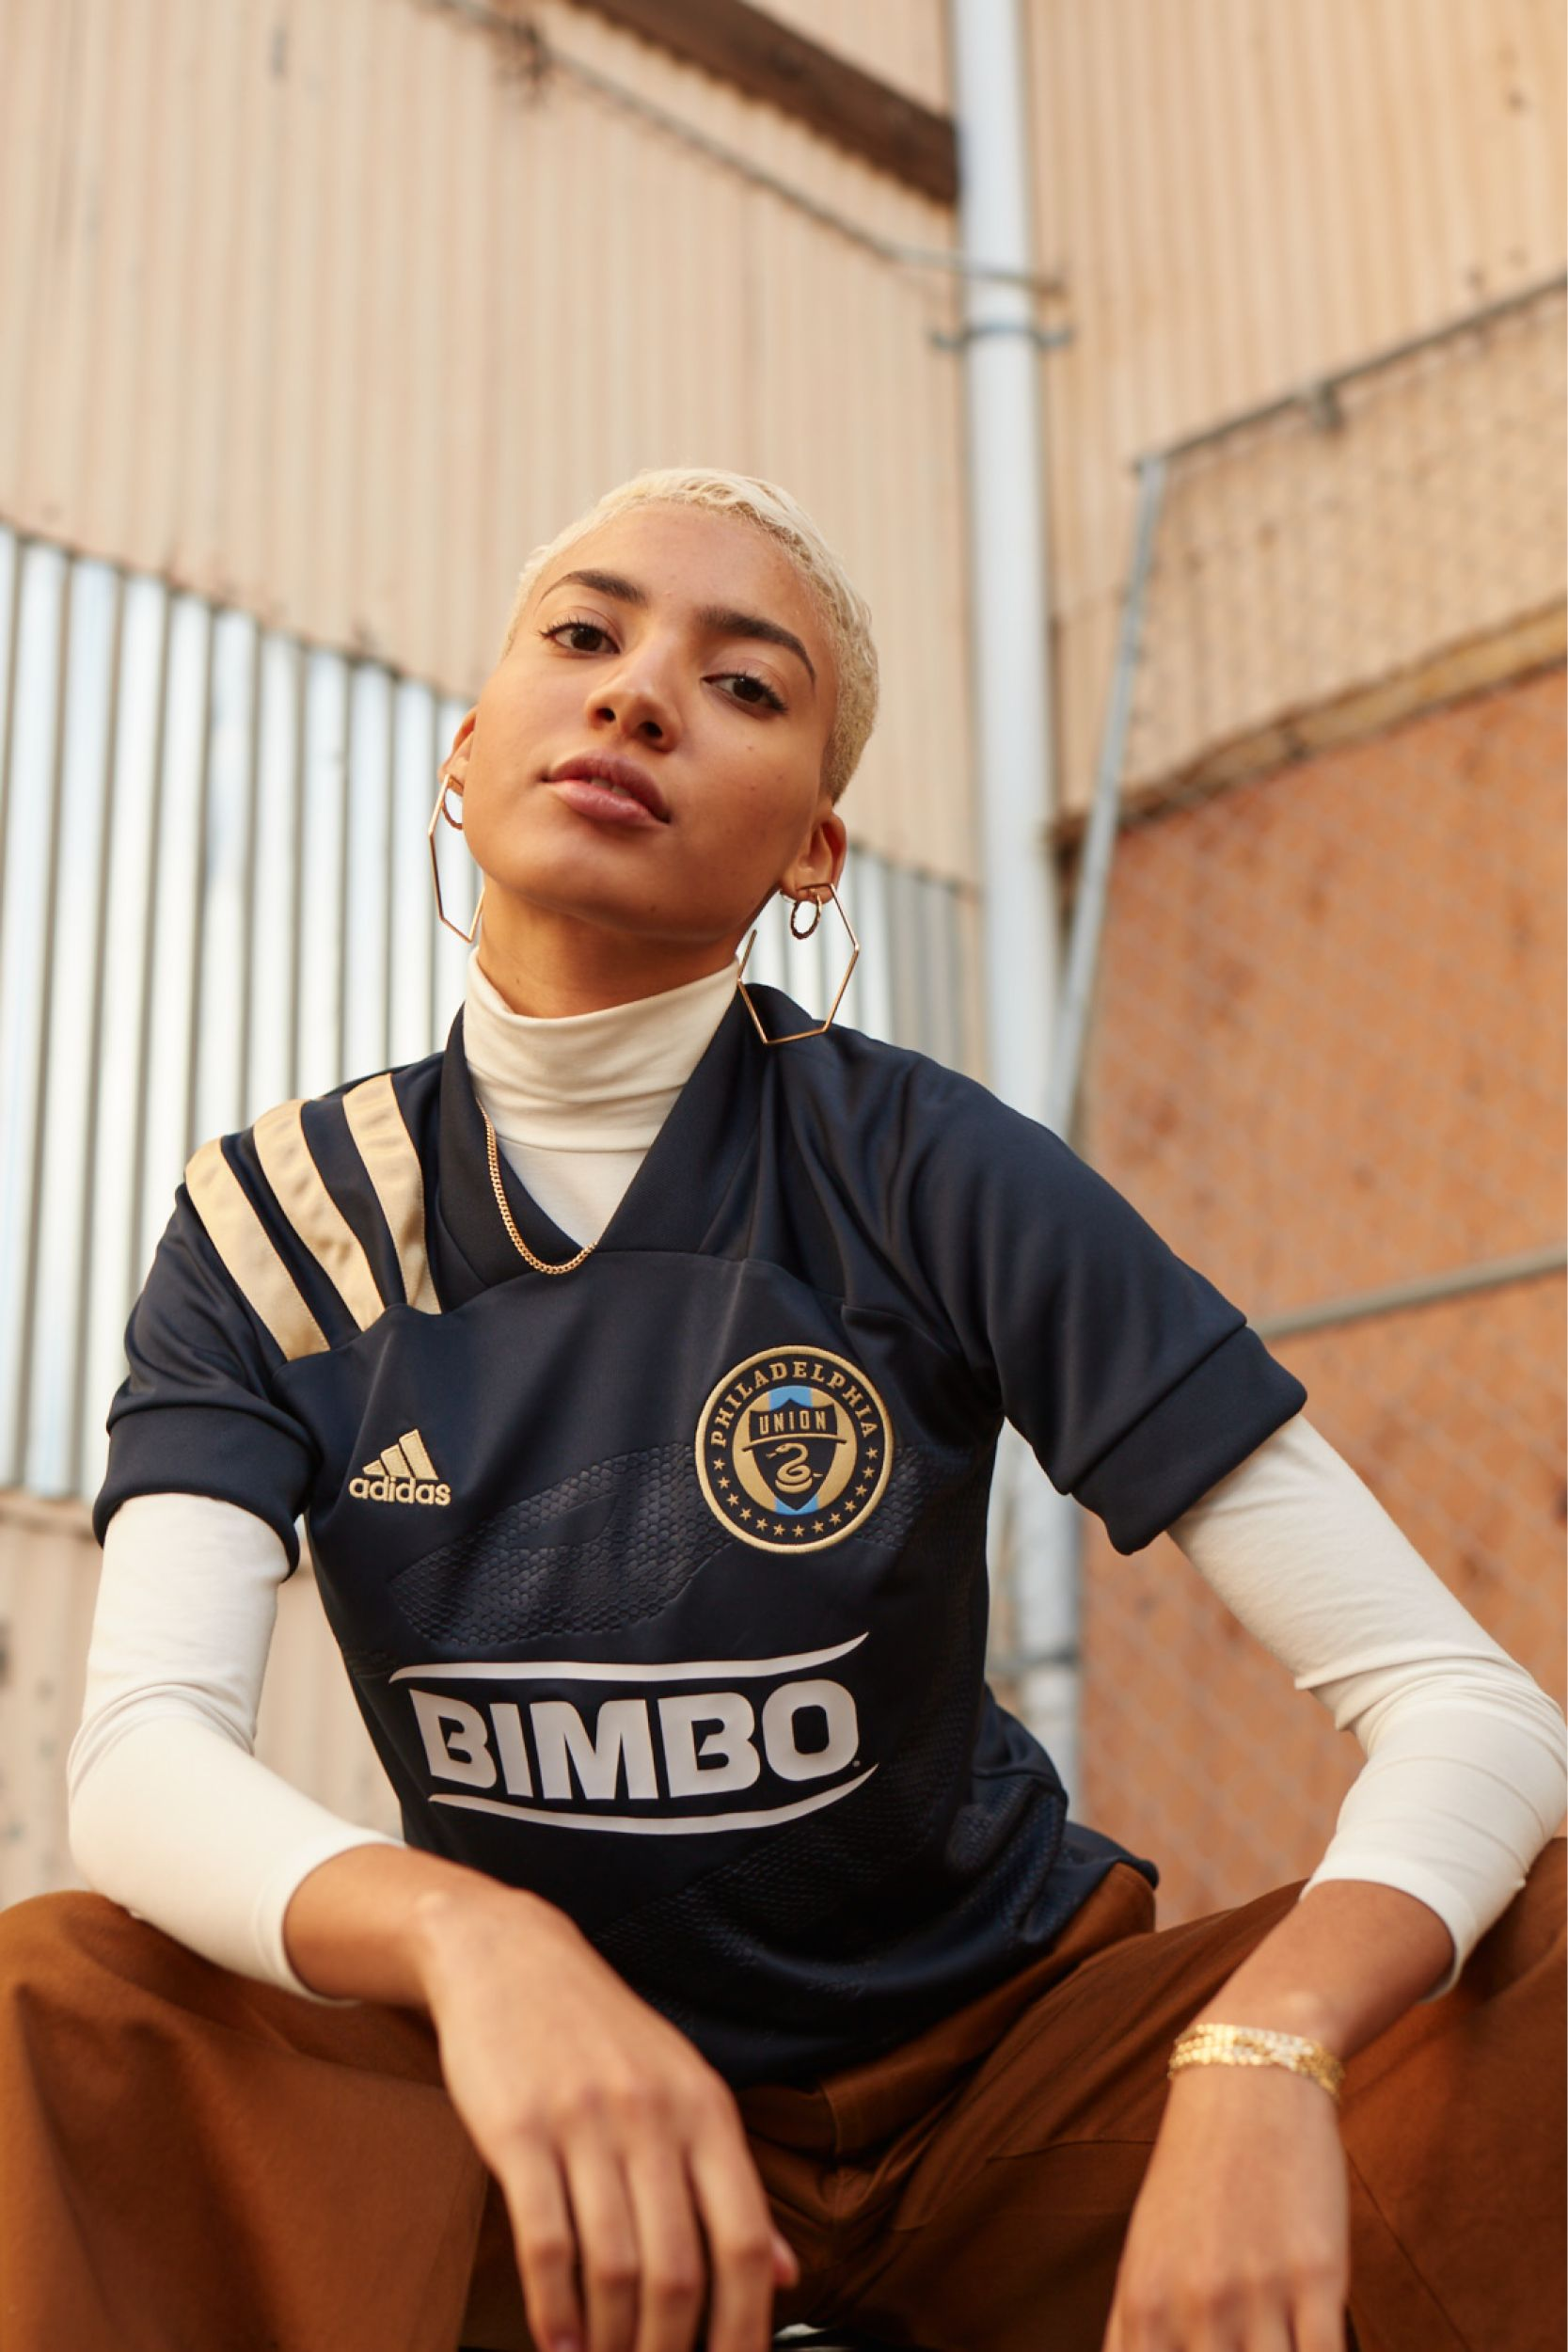 The 2020 Adidas X Major League Soccer Mls Jersey For The Philadelphia Union Stays Loyal To In 2020 Football Jersey Outfit Football Fashion Editorial Football Fashion